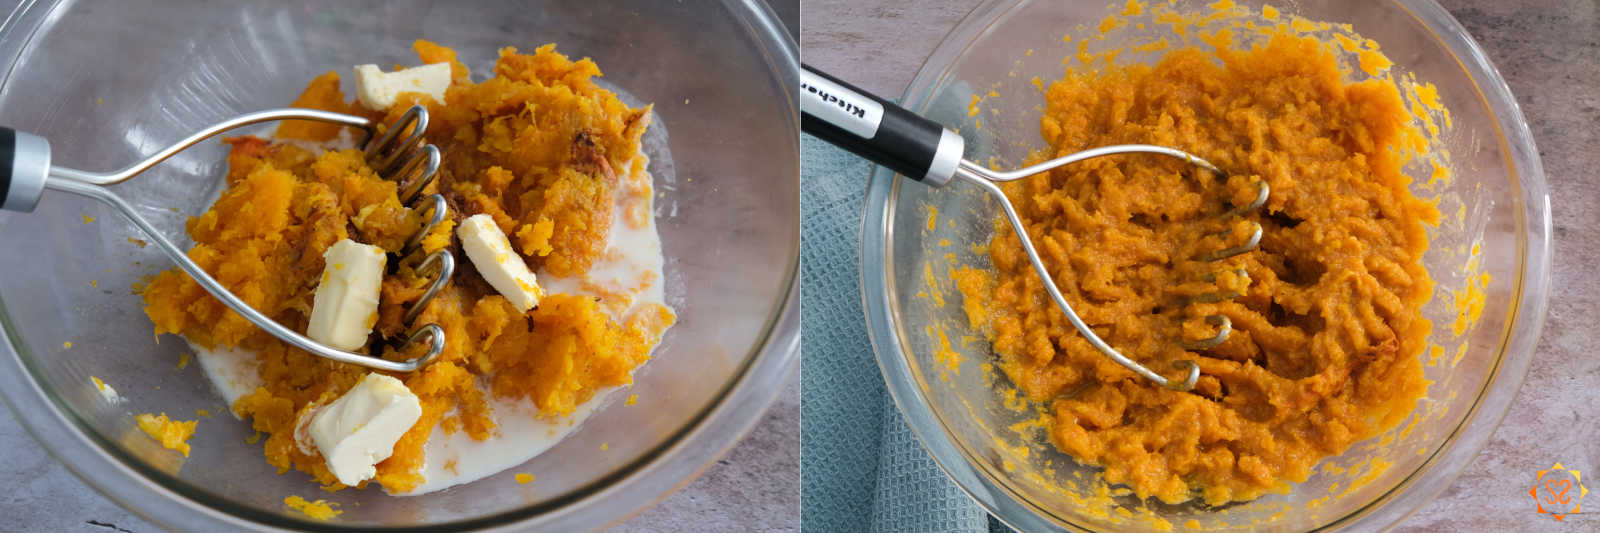 On the left: squash, almond milk, vegan butter, and seasonings in a bowl with a potato masher before mashing; Right: Butternut squash and other ingredients in a bowl with a potato masher after mashing.